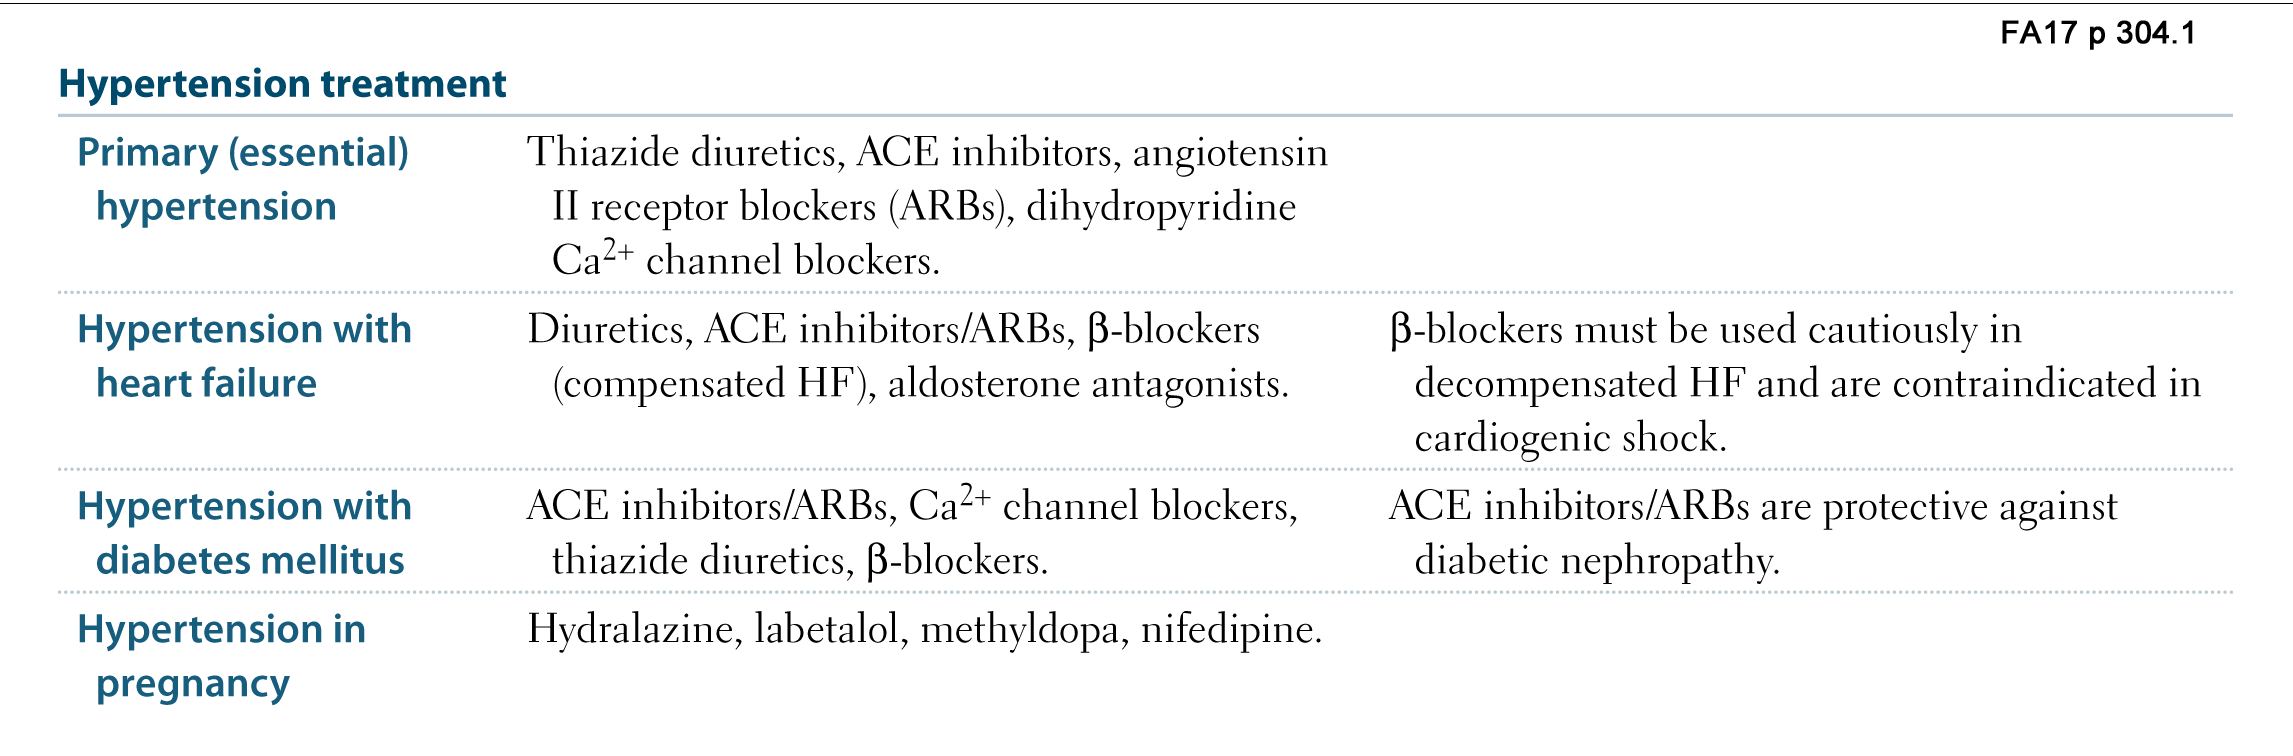 why are diuretics used with ace inhibitors